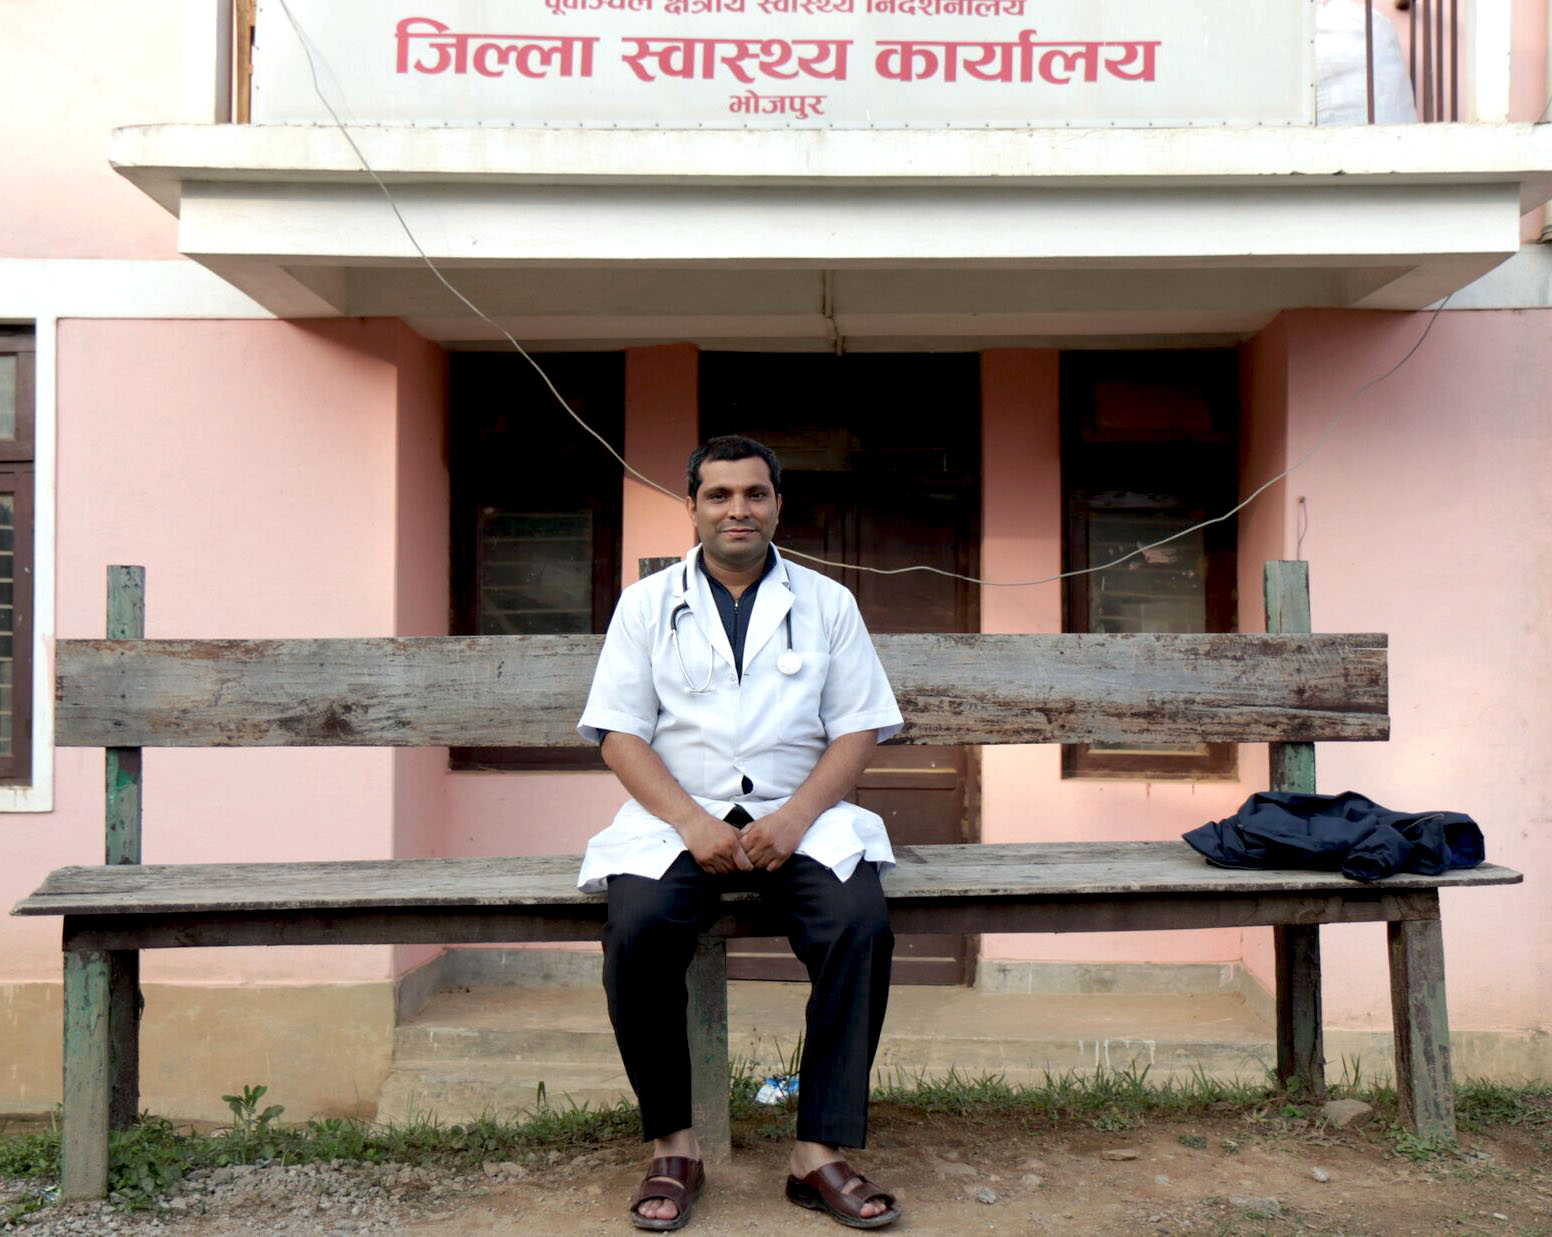 Dr. Jha, the district health officer and senior surgeon in the region